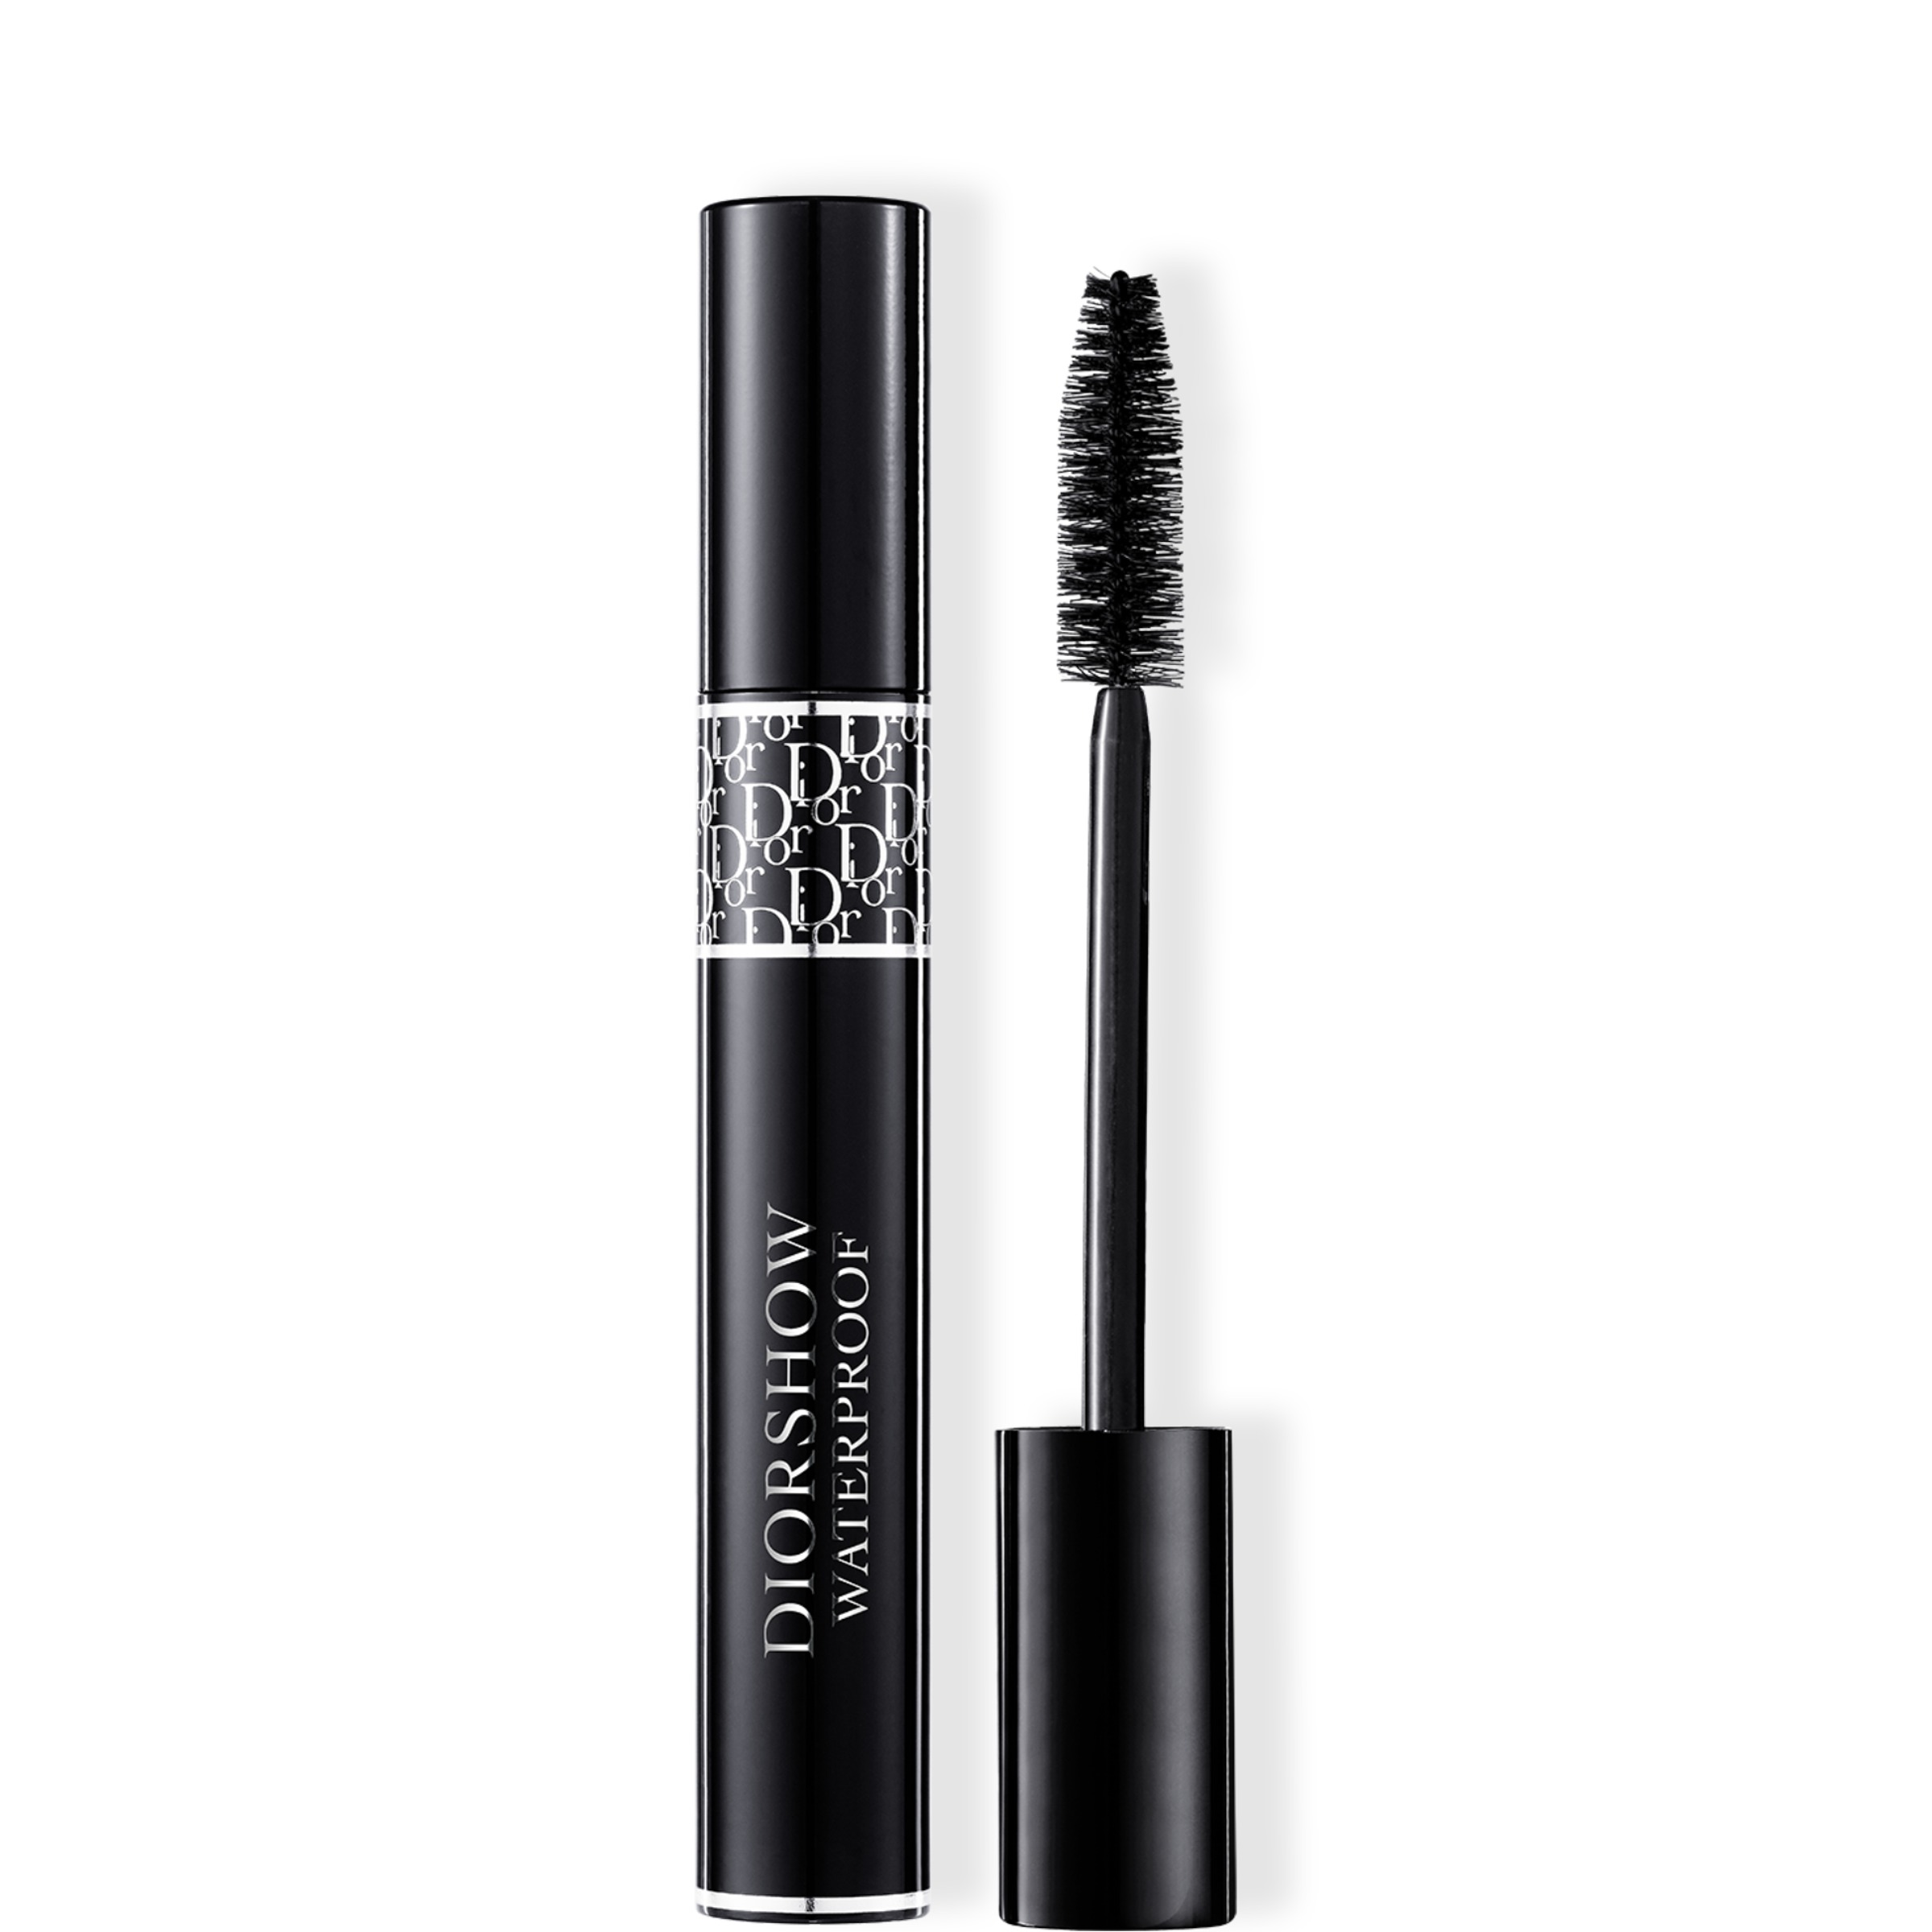 Diorshow Mascara Waterproof 090 Black